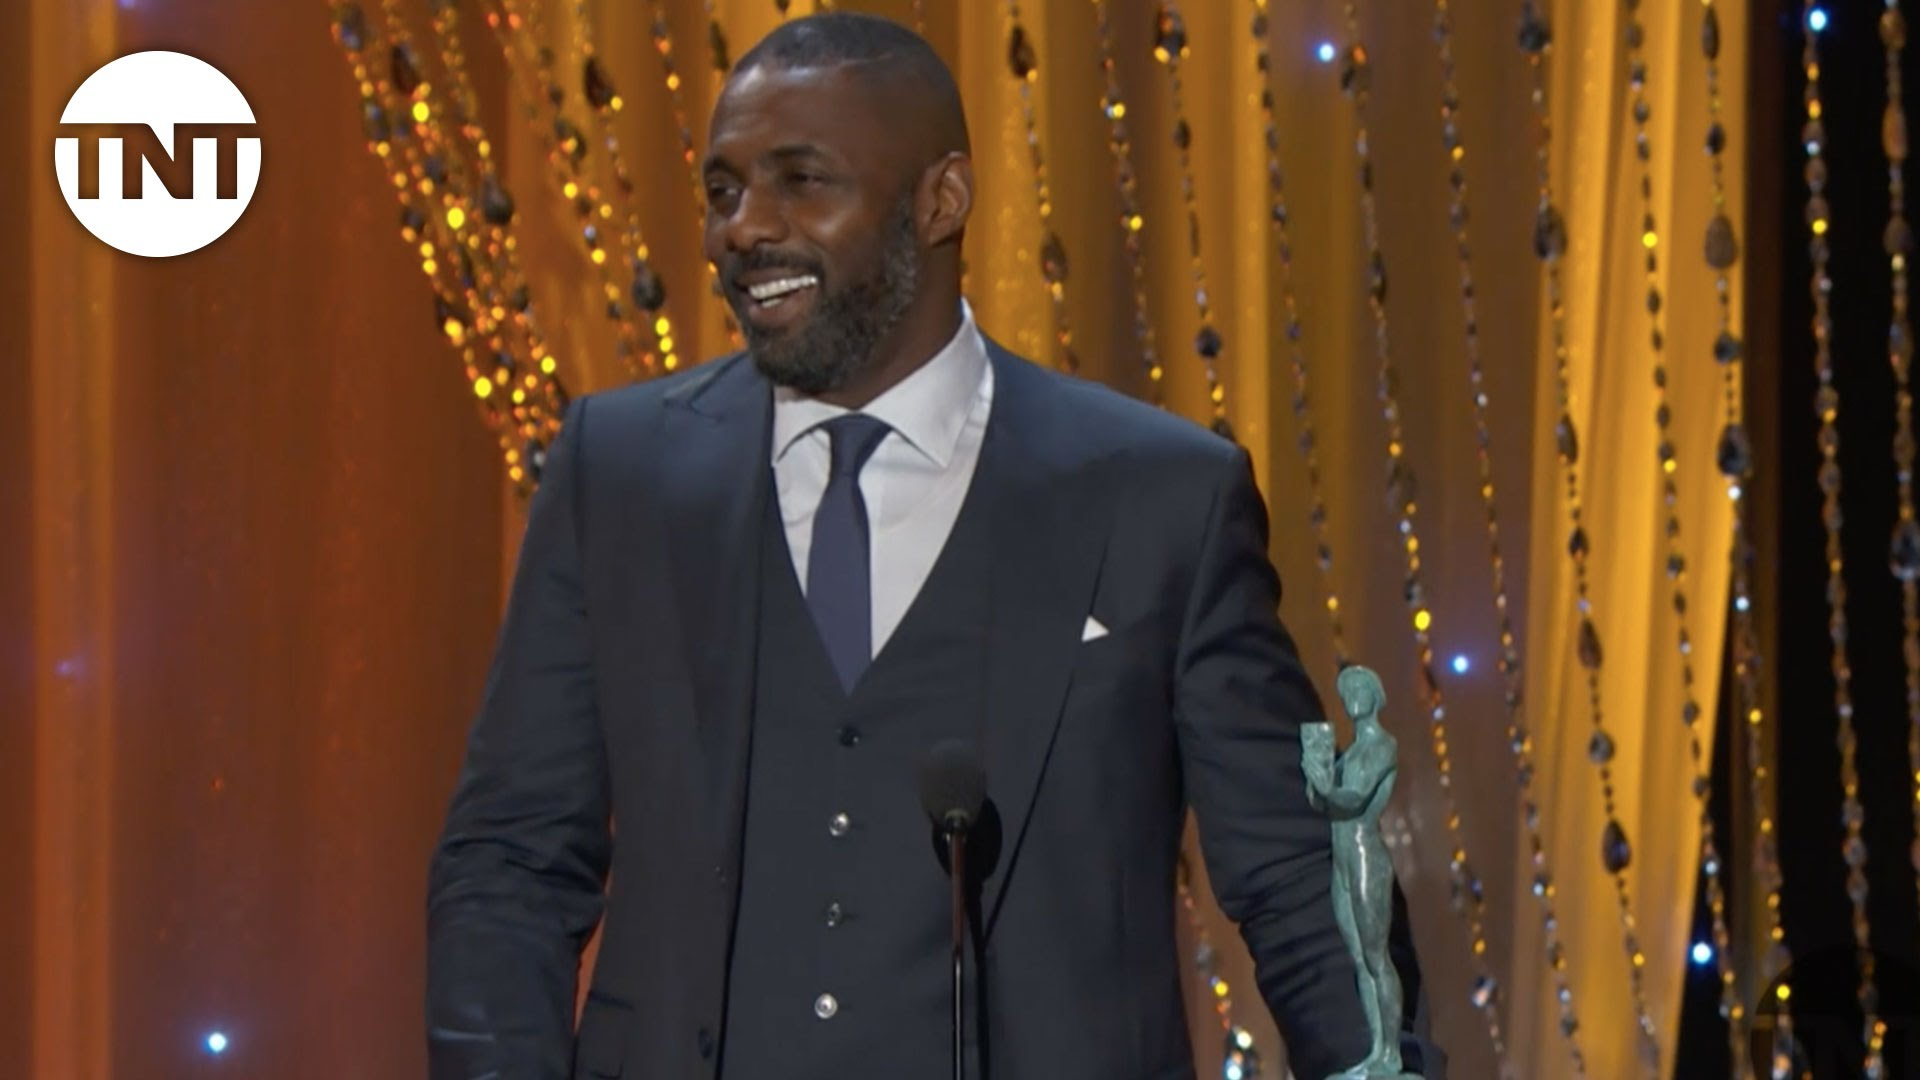 Idris Elba Makes History With 2 SAG Awards, Queen Latifah and Viola Davis Also Winners [VIDEO]